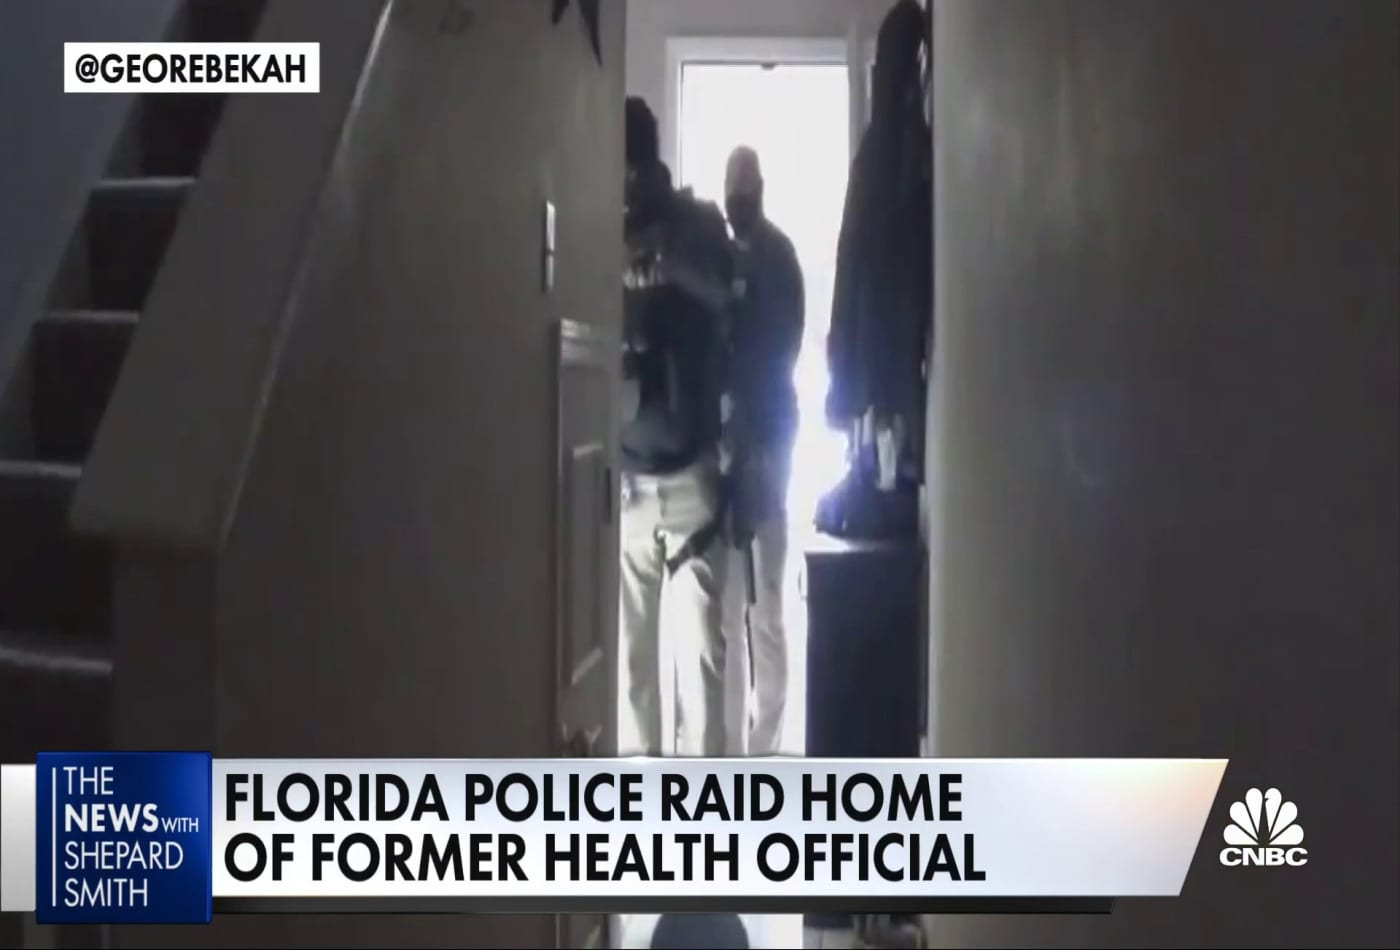 Florida police raid the home of a former health official